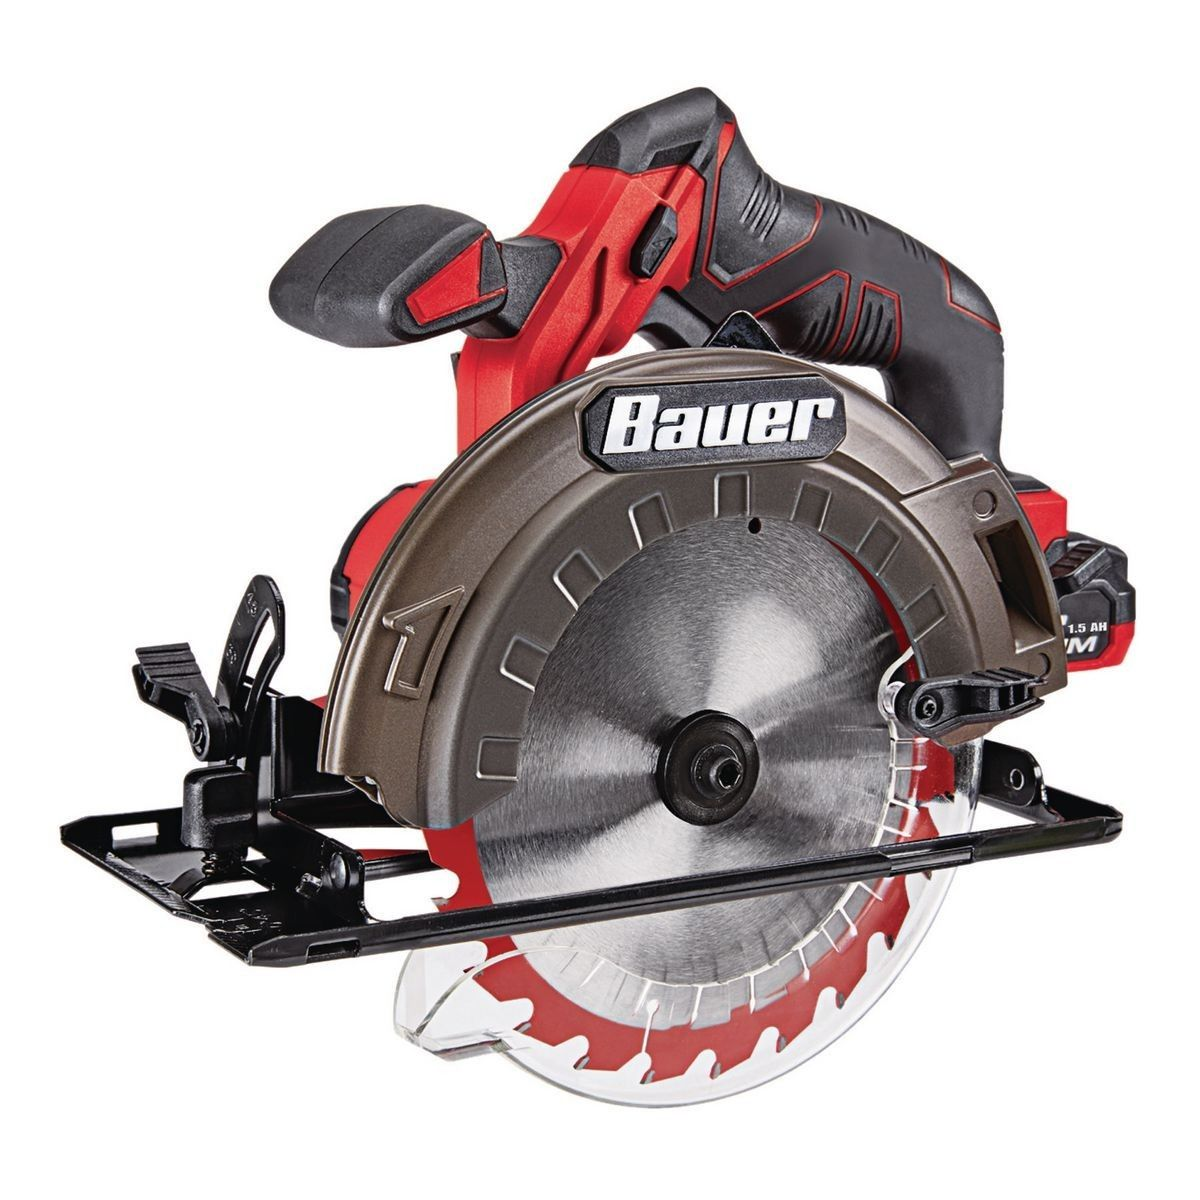 Pin By Jenny Ann On Original Version Cordless Circular Saw Saw Tool Circular Saw